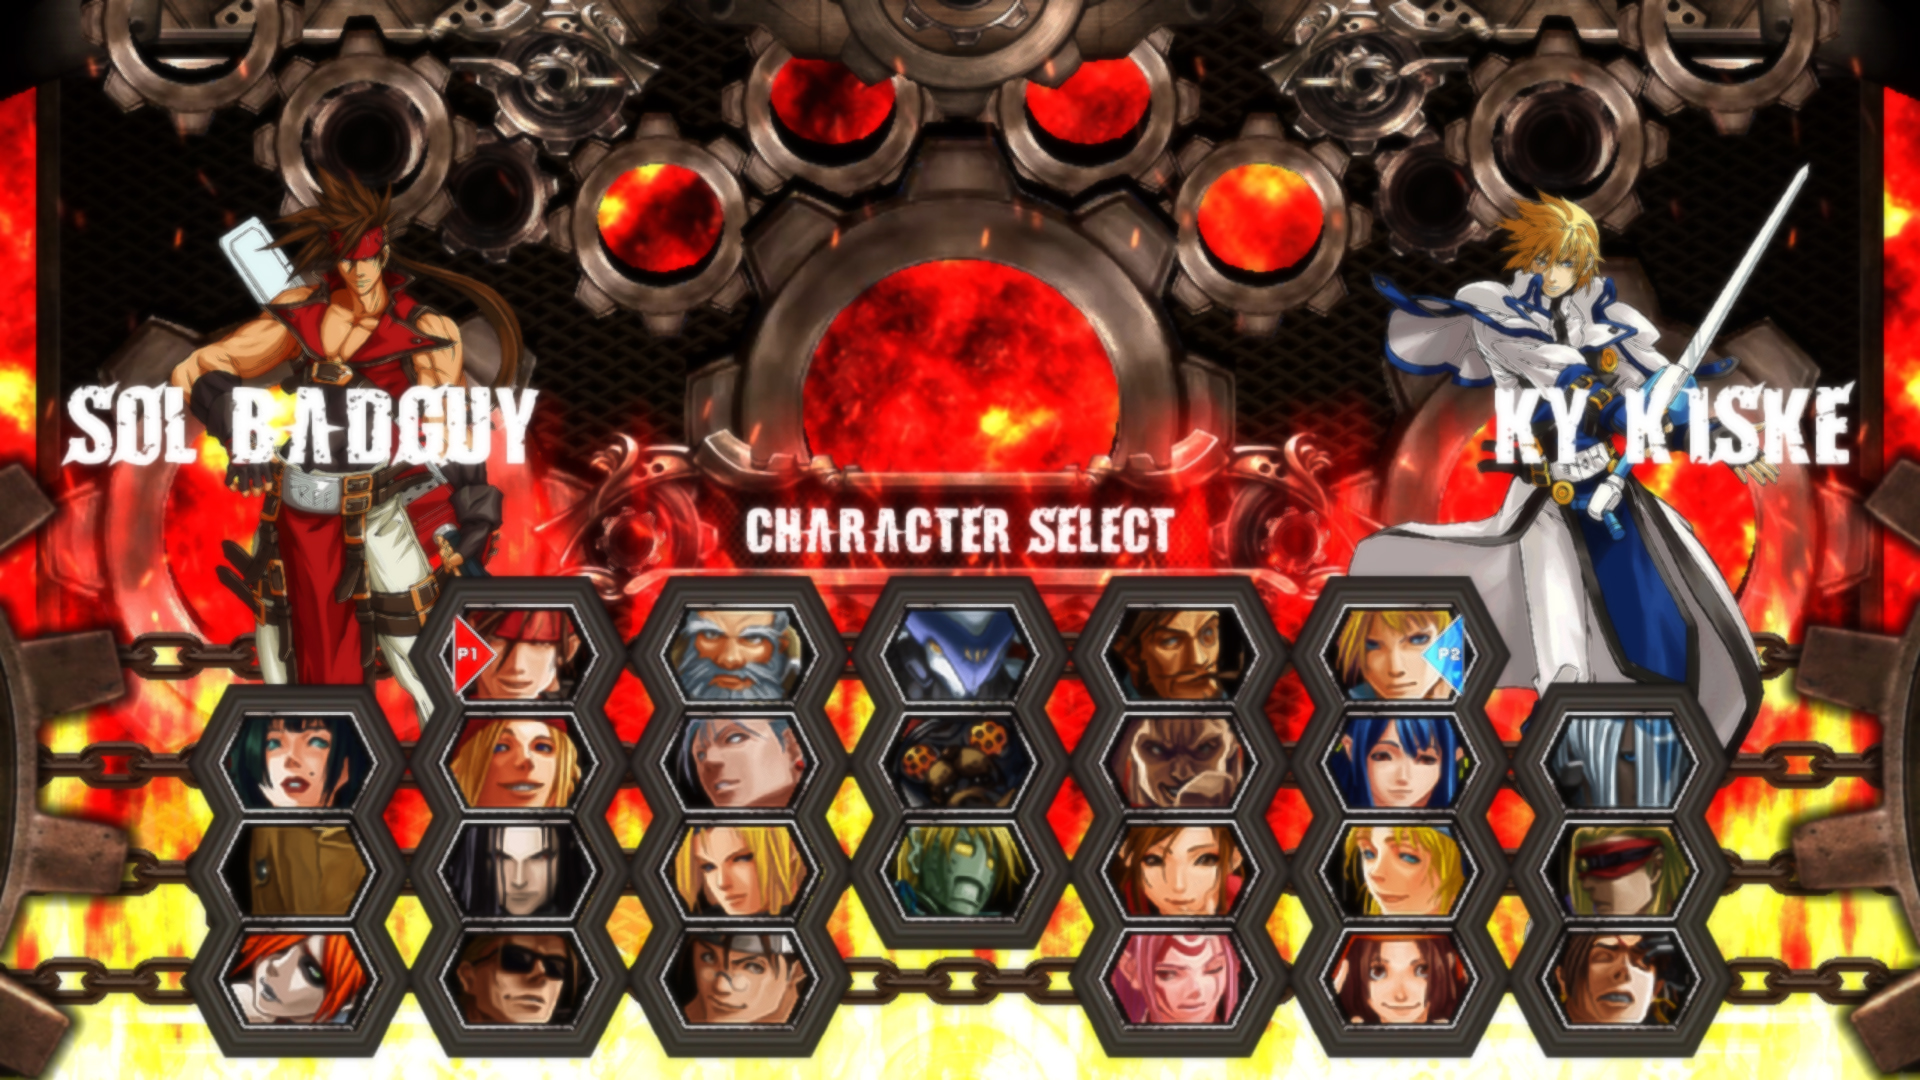 Guilty Gear XX Bloodshed Type OD+ mod for mugen - Mod DB